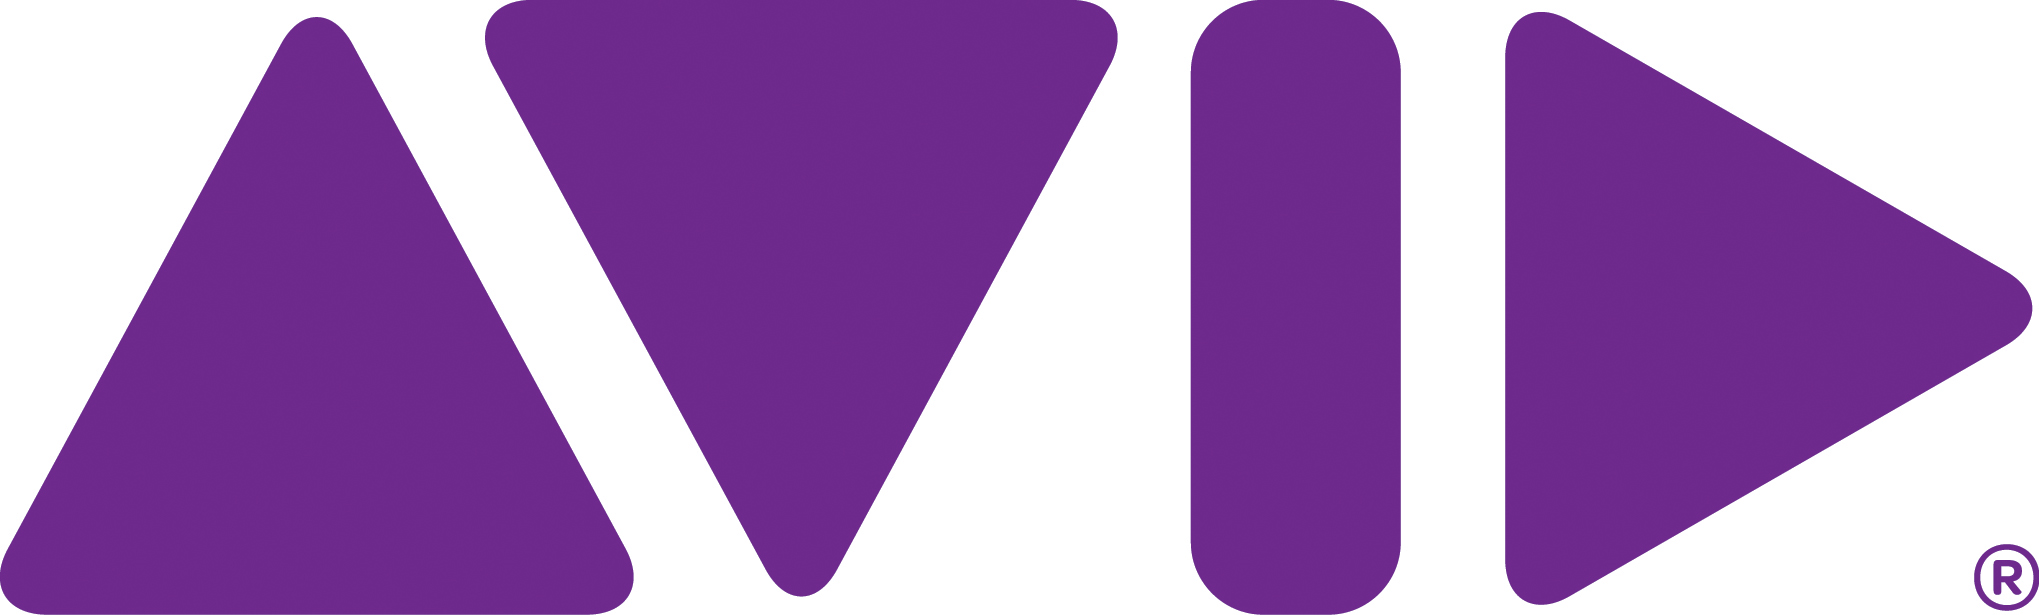 avid.com - Avid Wins 2018 Microsoft US Partner Award for Helping the Communications and Media Industry Leverage the Cloud | Avid Technology, Inc.